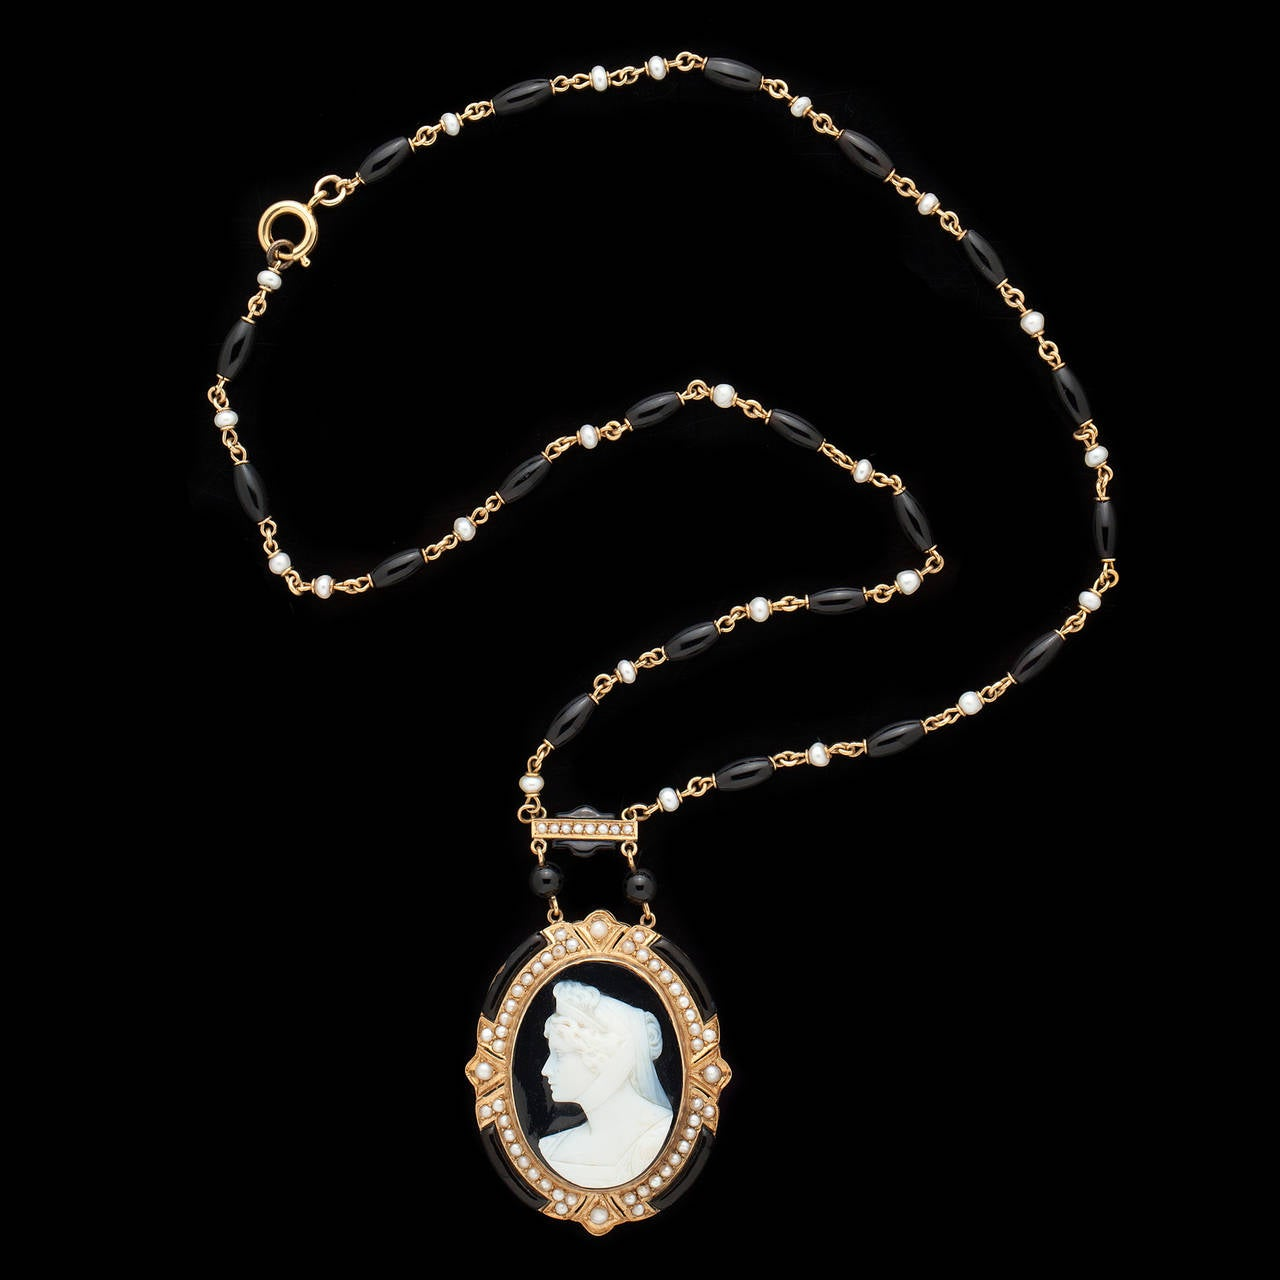 Victorian Cameo Pendant Necklace 4